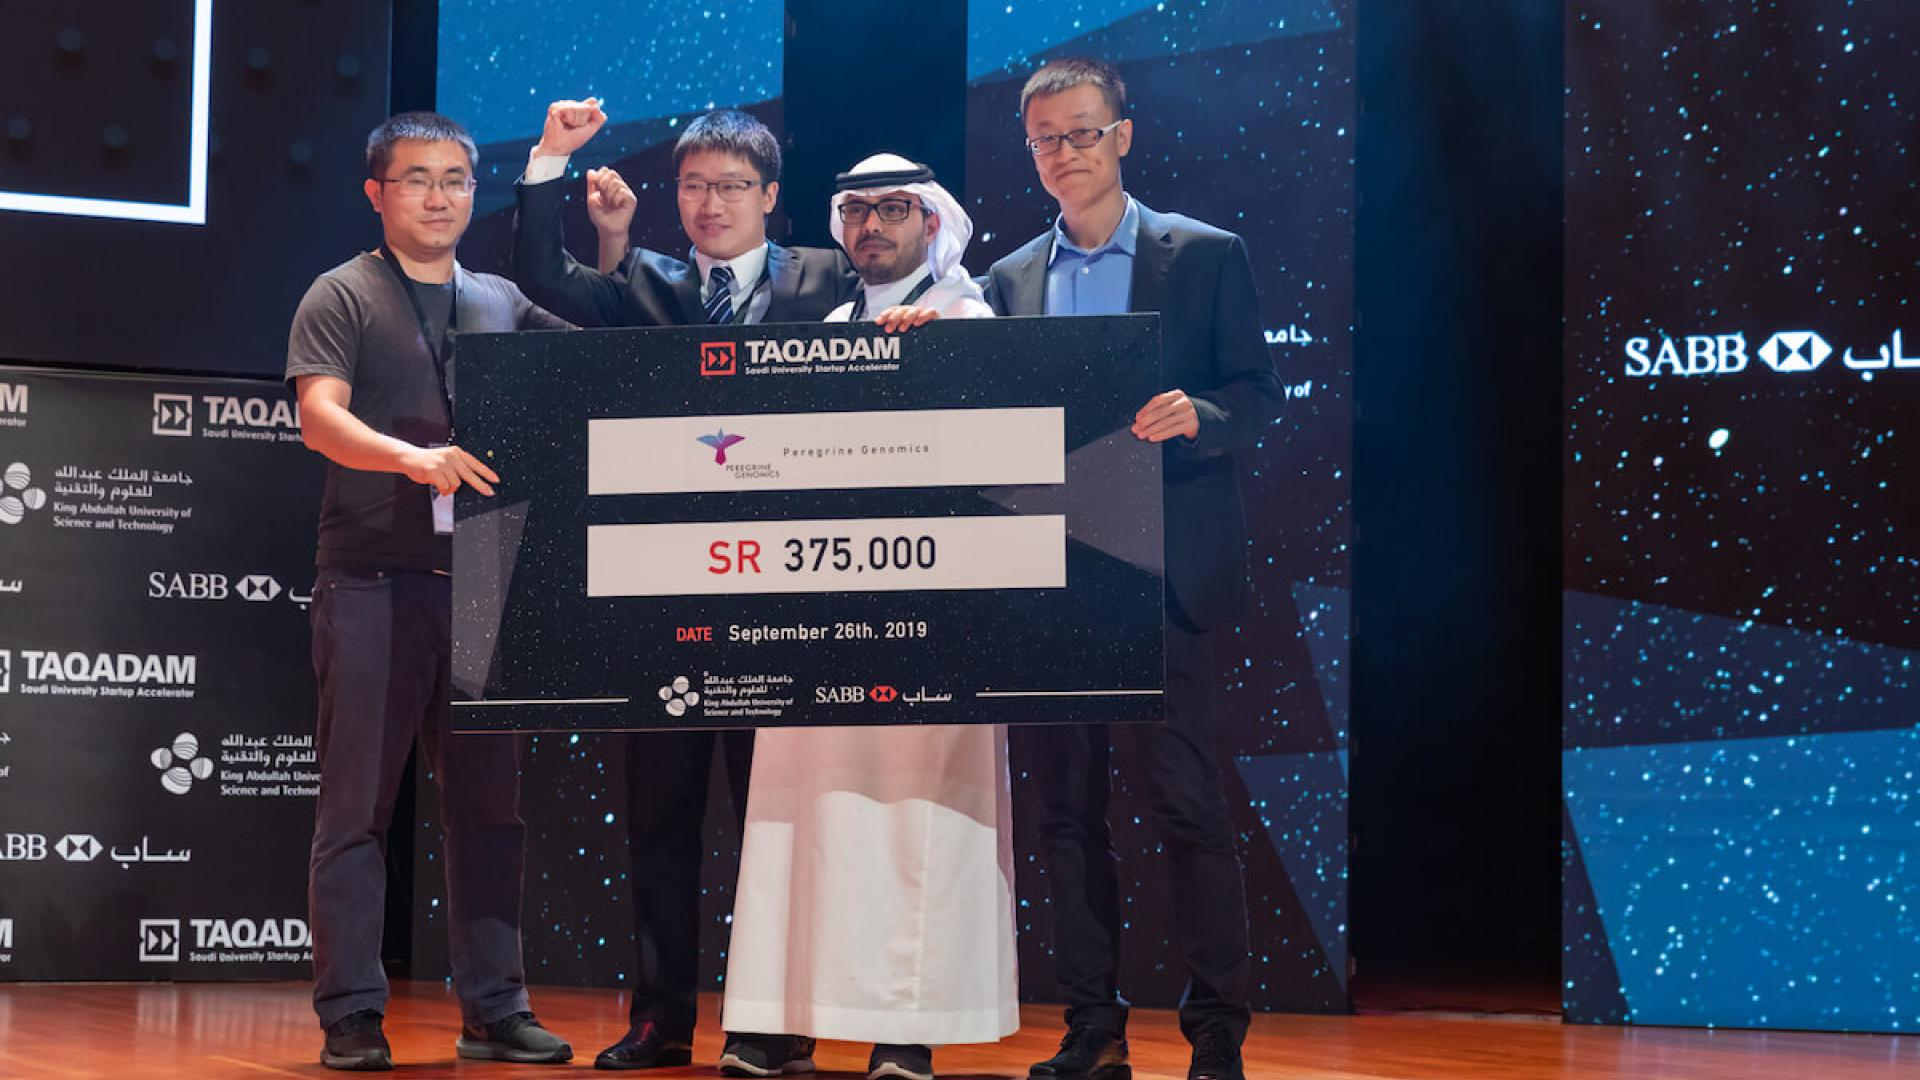 KAUST CEMSE CS SFB CBRC Peregrine Genomics Taqadam Start Up